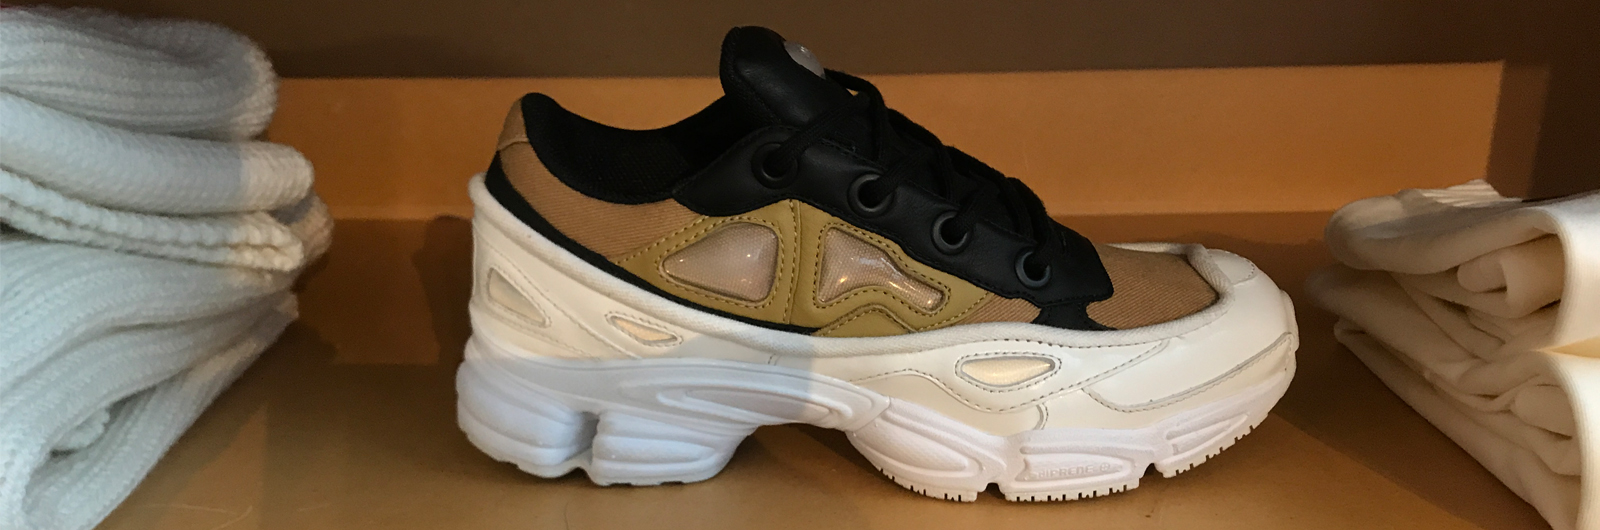 3a6dbaf0db92 Ugly Sneakers Are Still Just Ugly